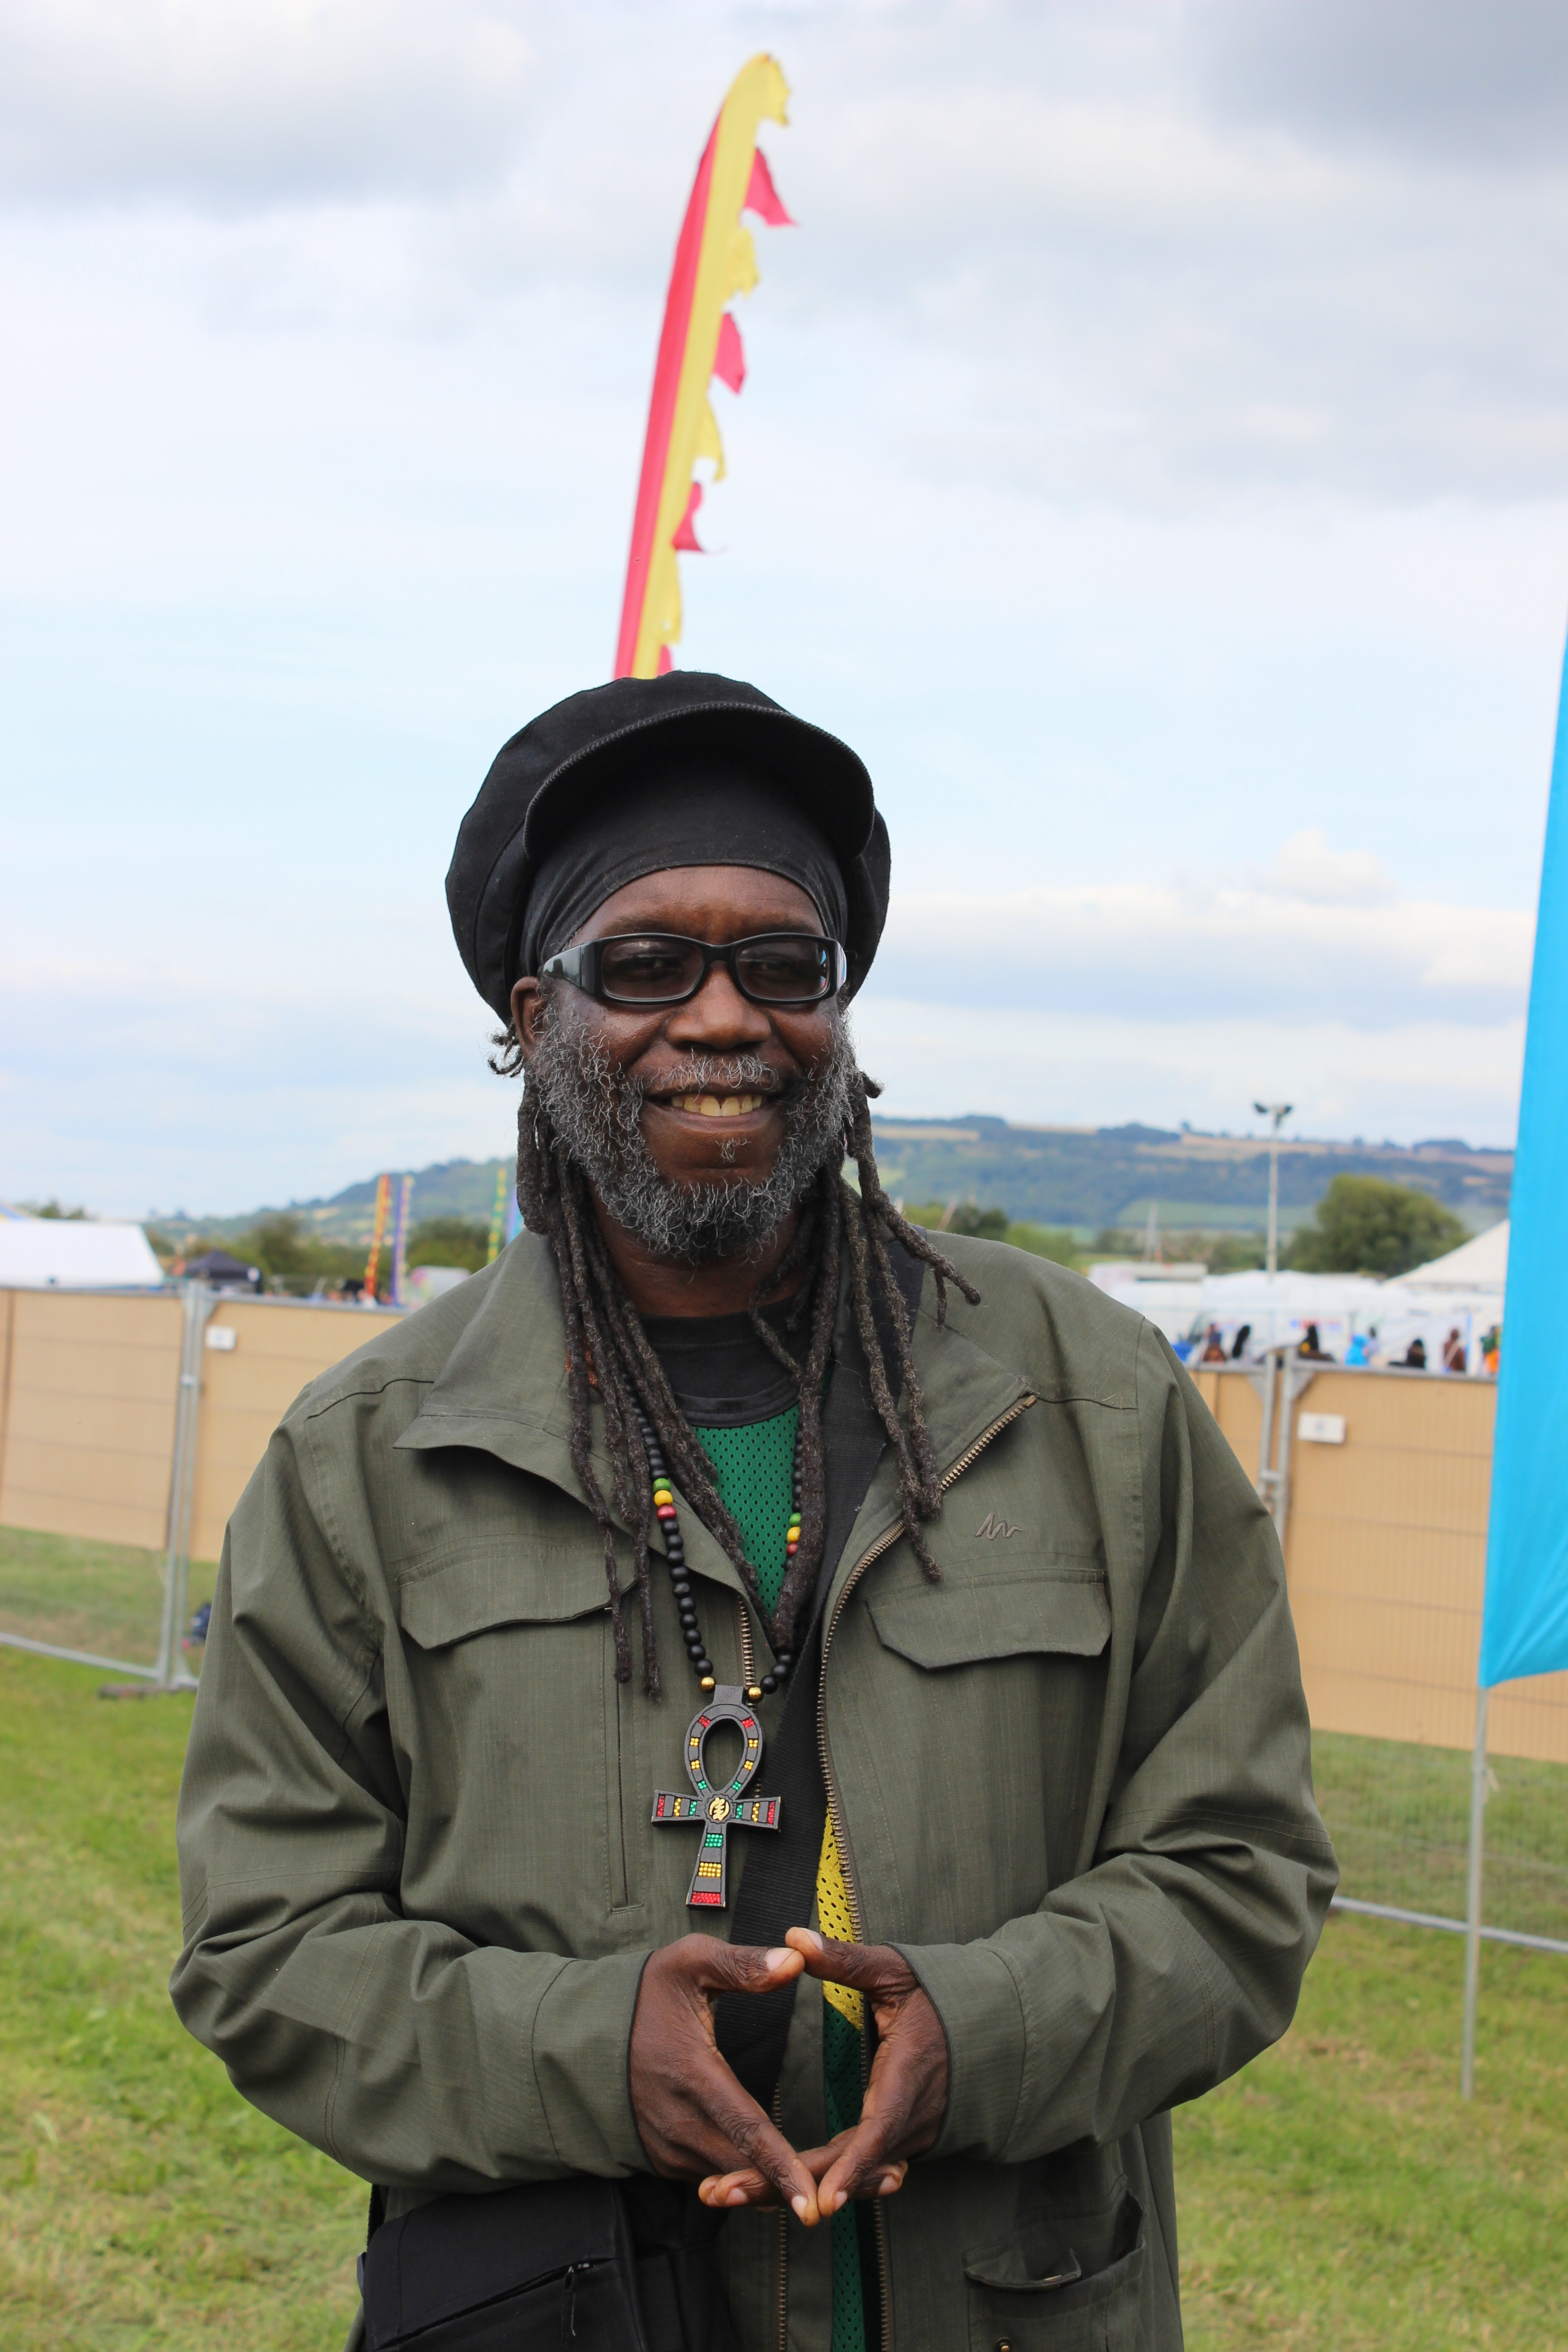 Macka B backstage at One Love Festival 2015